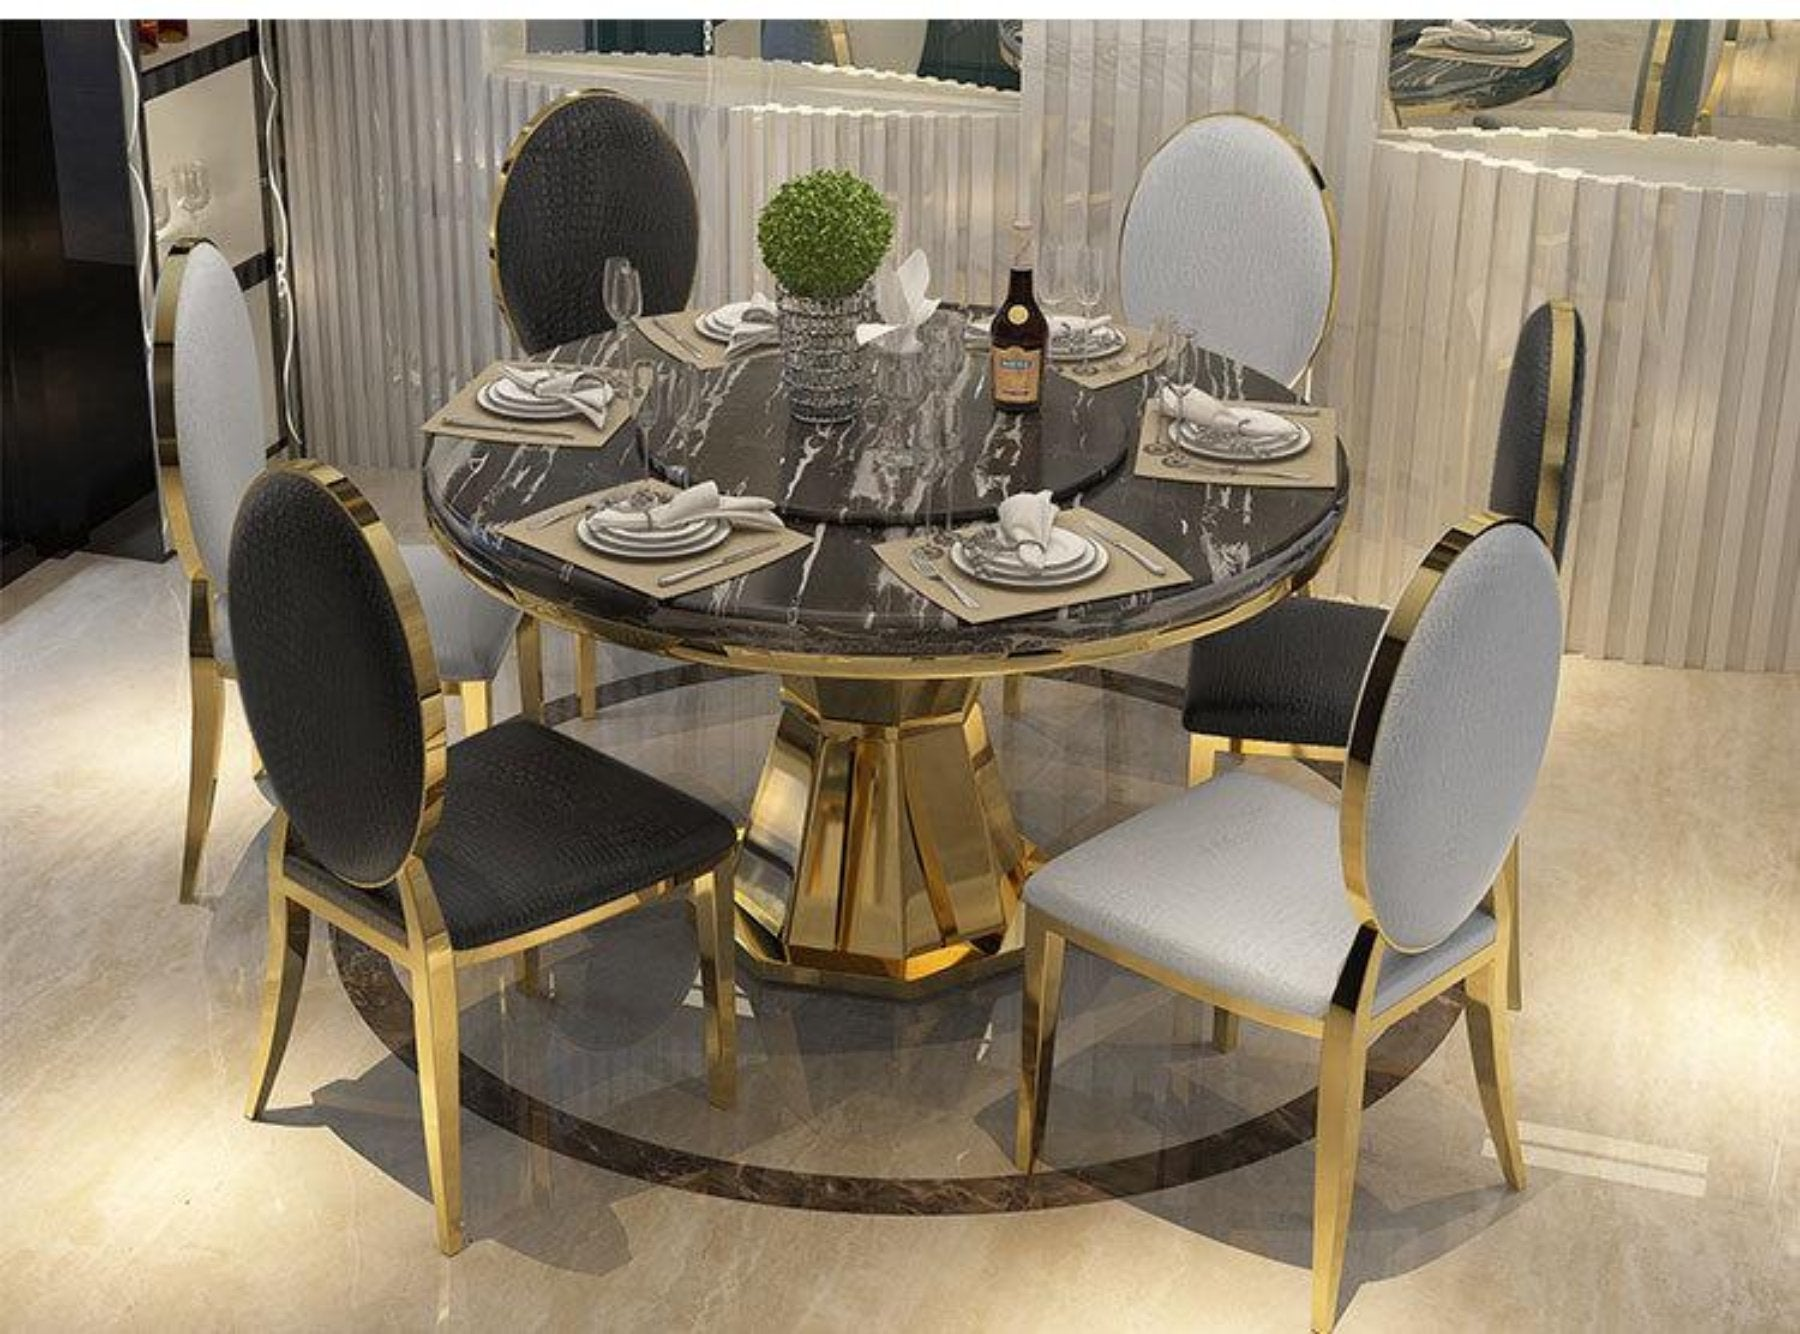 Golden Round Marble Top Dining Table With Luxury Chairs My Aashis